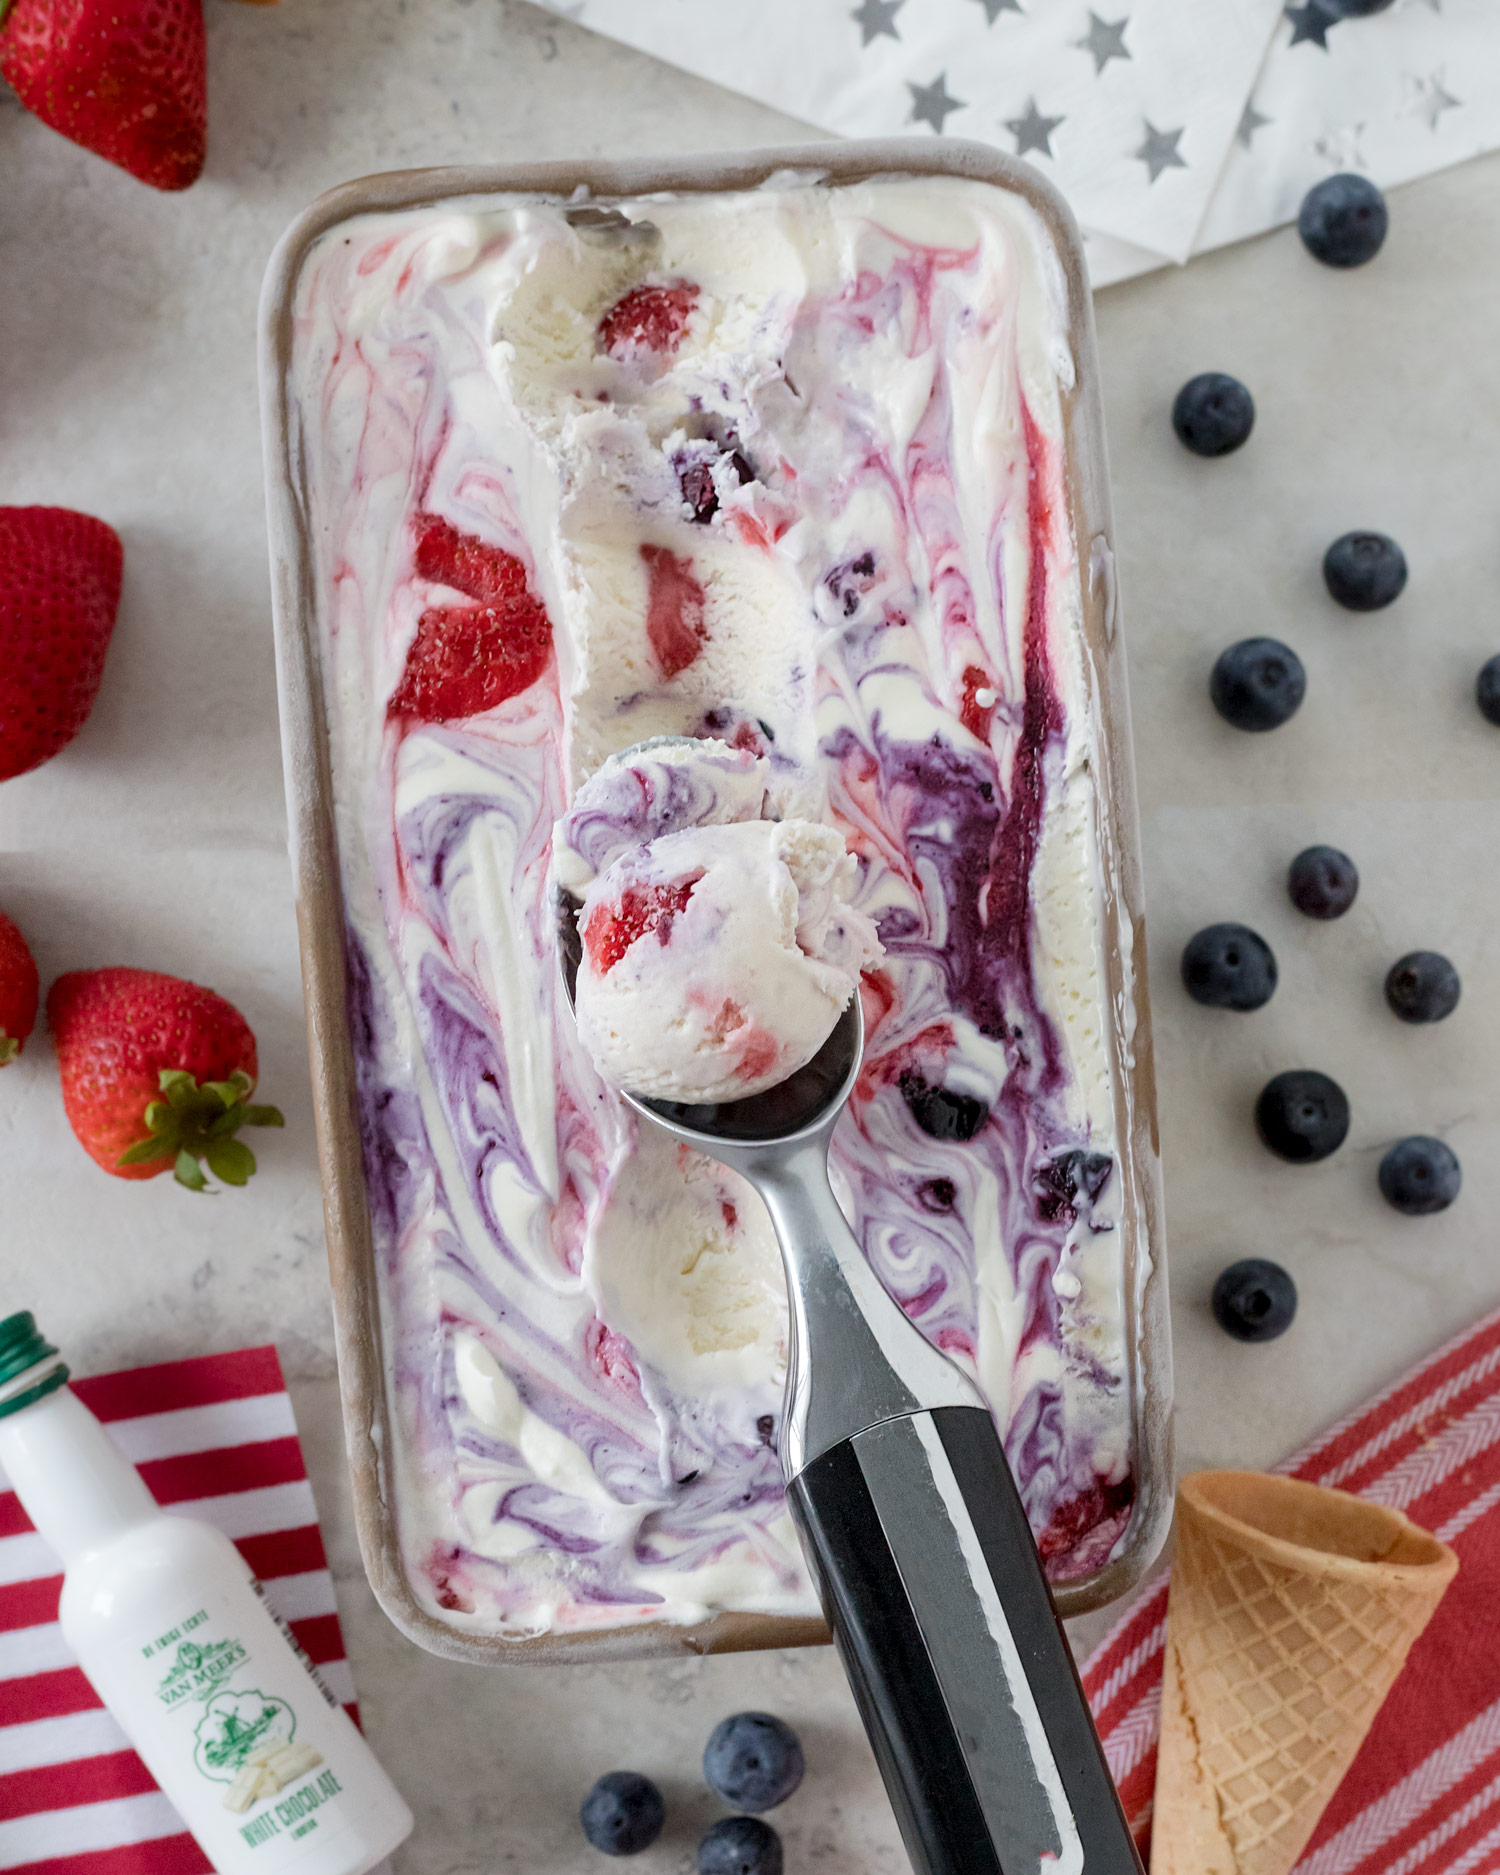 This Fourth of July no-churn ice cream is a white chocolate liqueur ice cream with strawberry and blueberry swirls that doesn't require an ice cream maker for a red, white, and blue dessert you'll love. This boozy no-churn ice cream recipe is super simple. #NoChurnIceCream #IceCreamRecipe #BoozyTreat #BoozyIceCream #HomemadeRecipe #HomemadeIceCream #DessertRecipe #FourthofJulyParty #FourthofJulyIceCream #ElleTalk